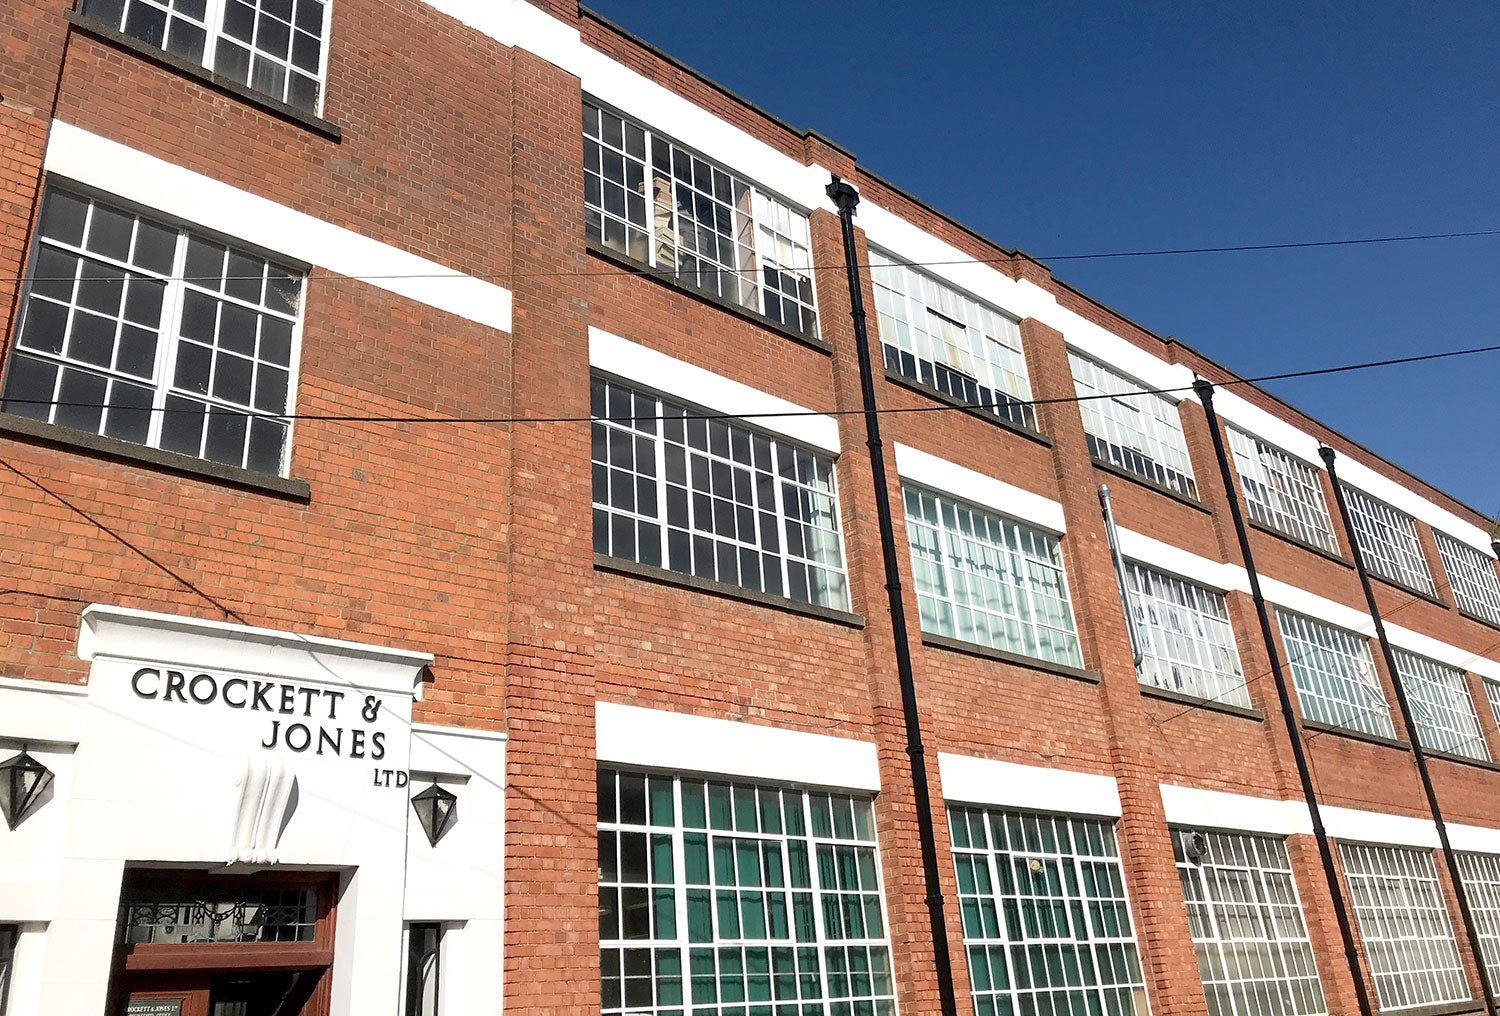 Crockett & Jones factory shop